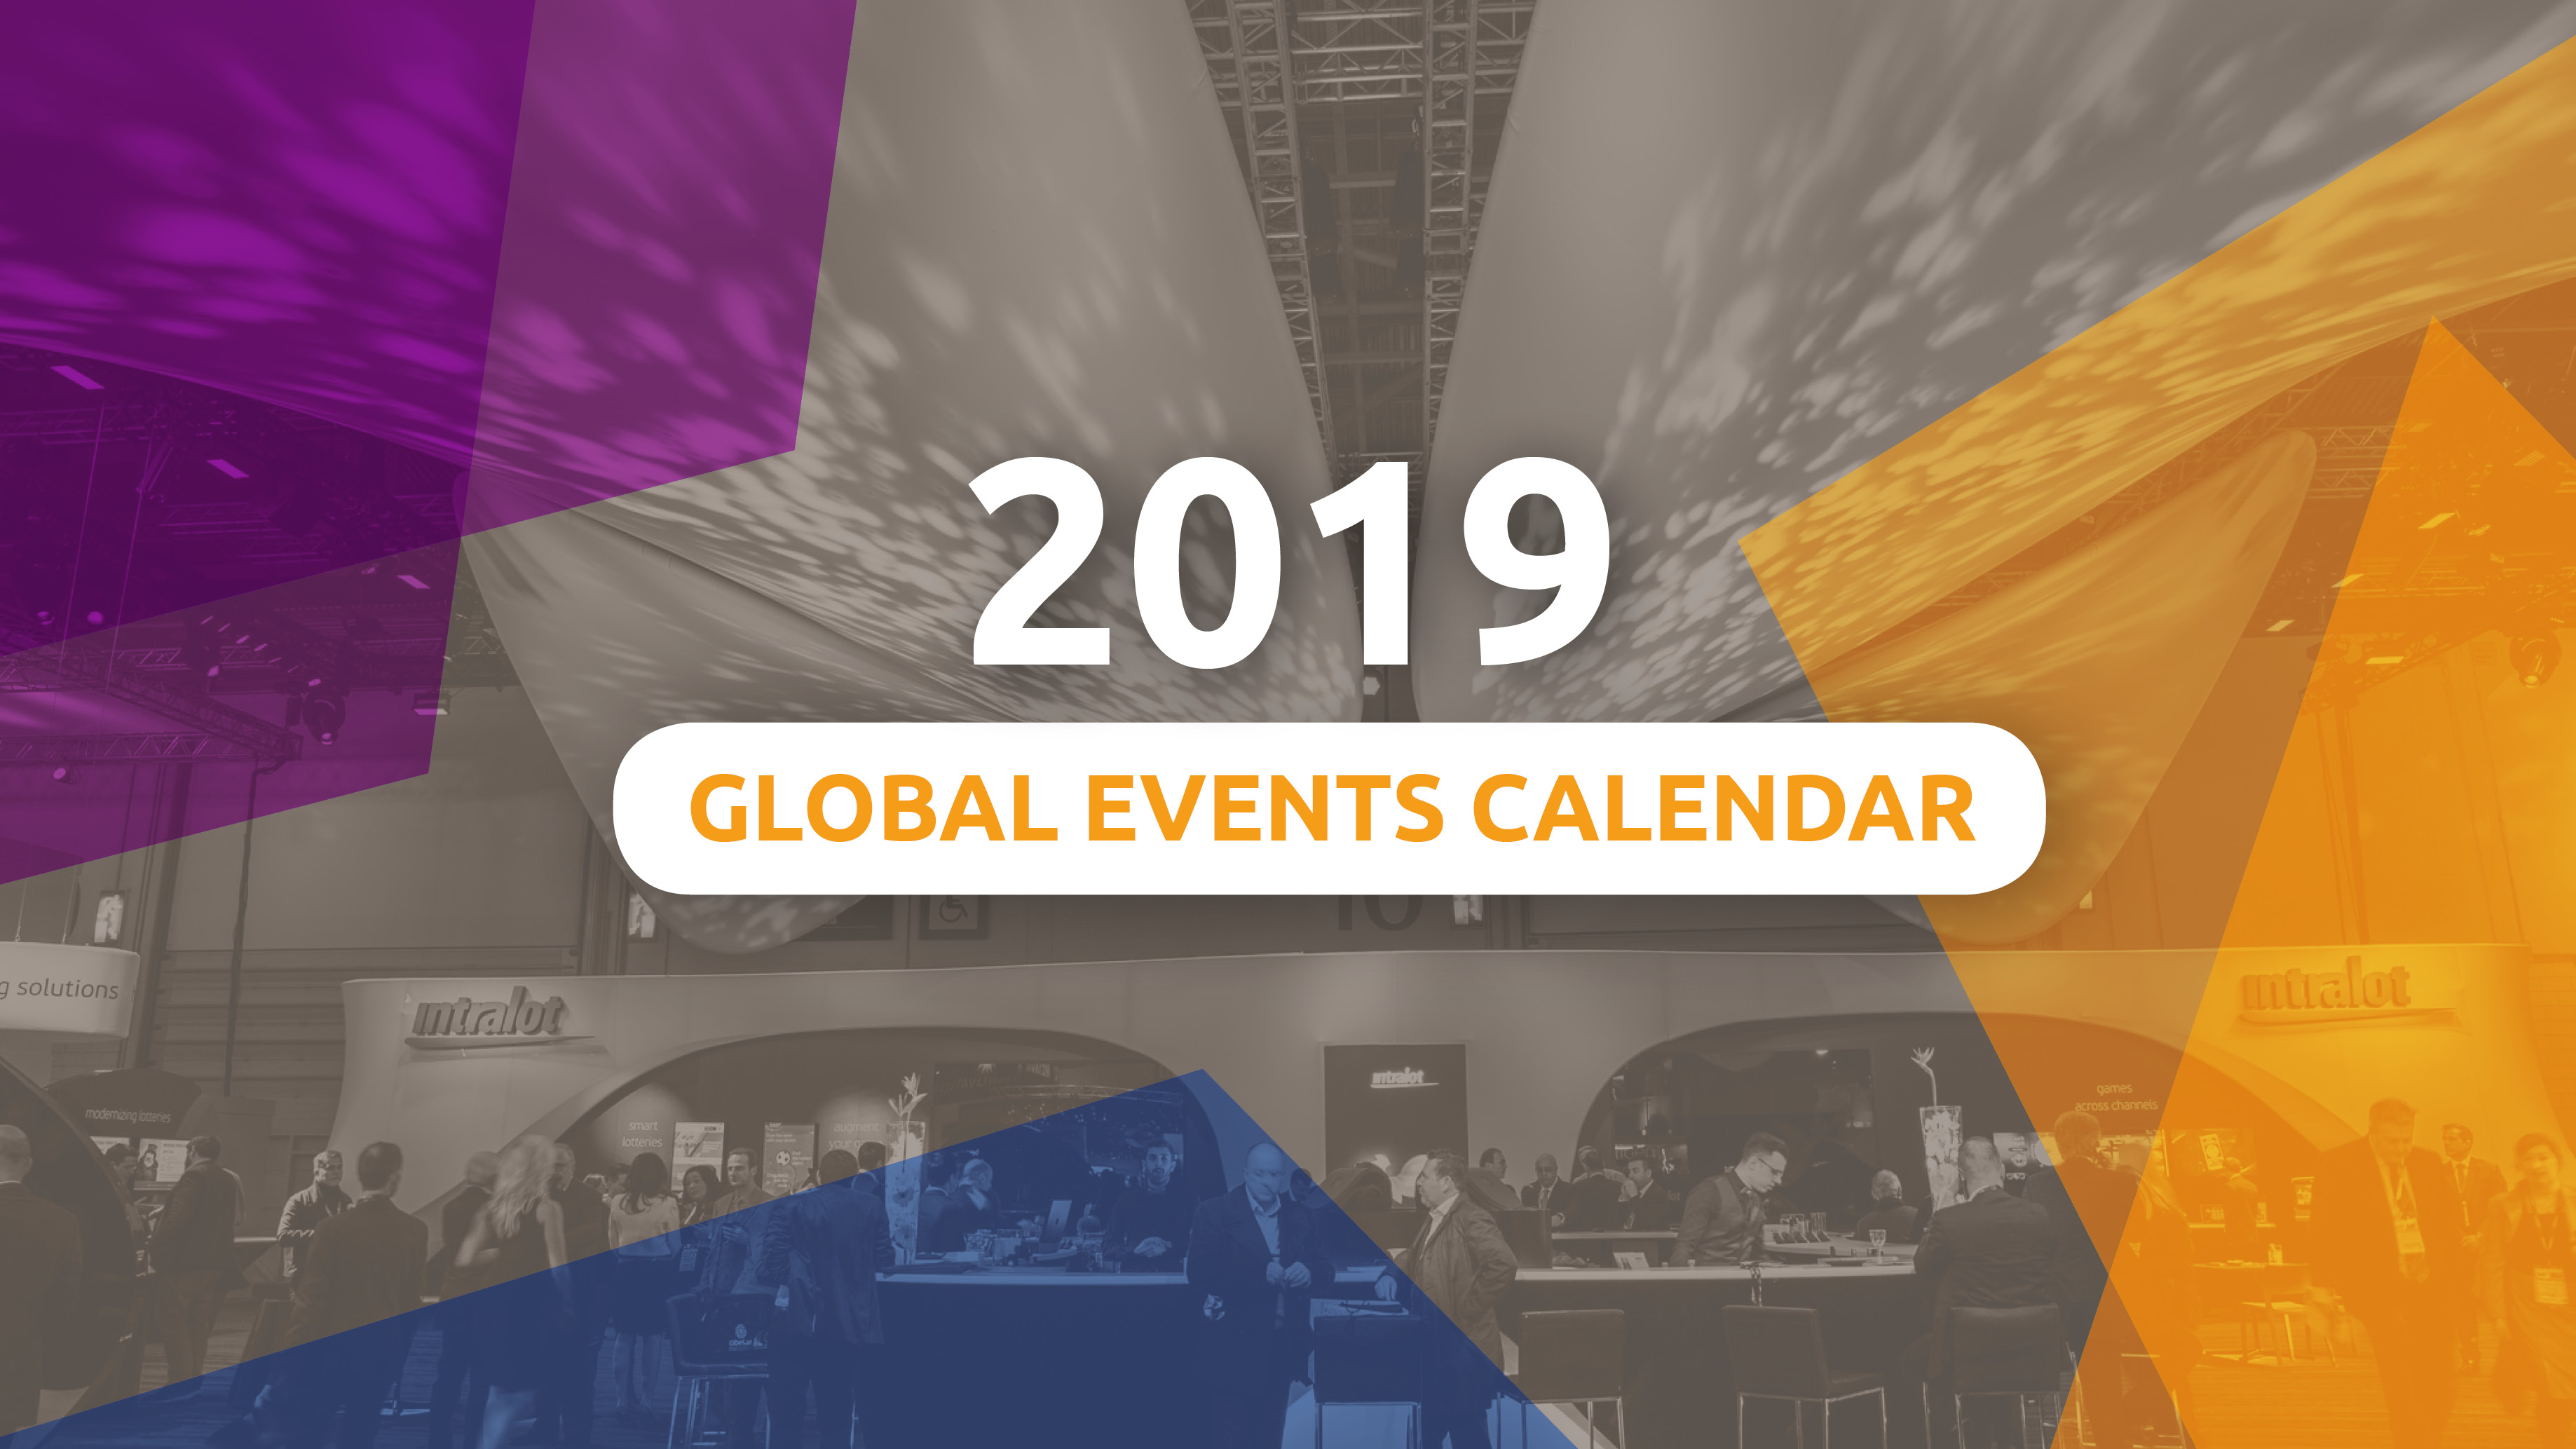 Global iGaming & Tech Events Calendar 2019 | iGaming Academy